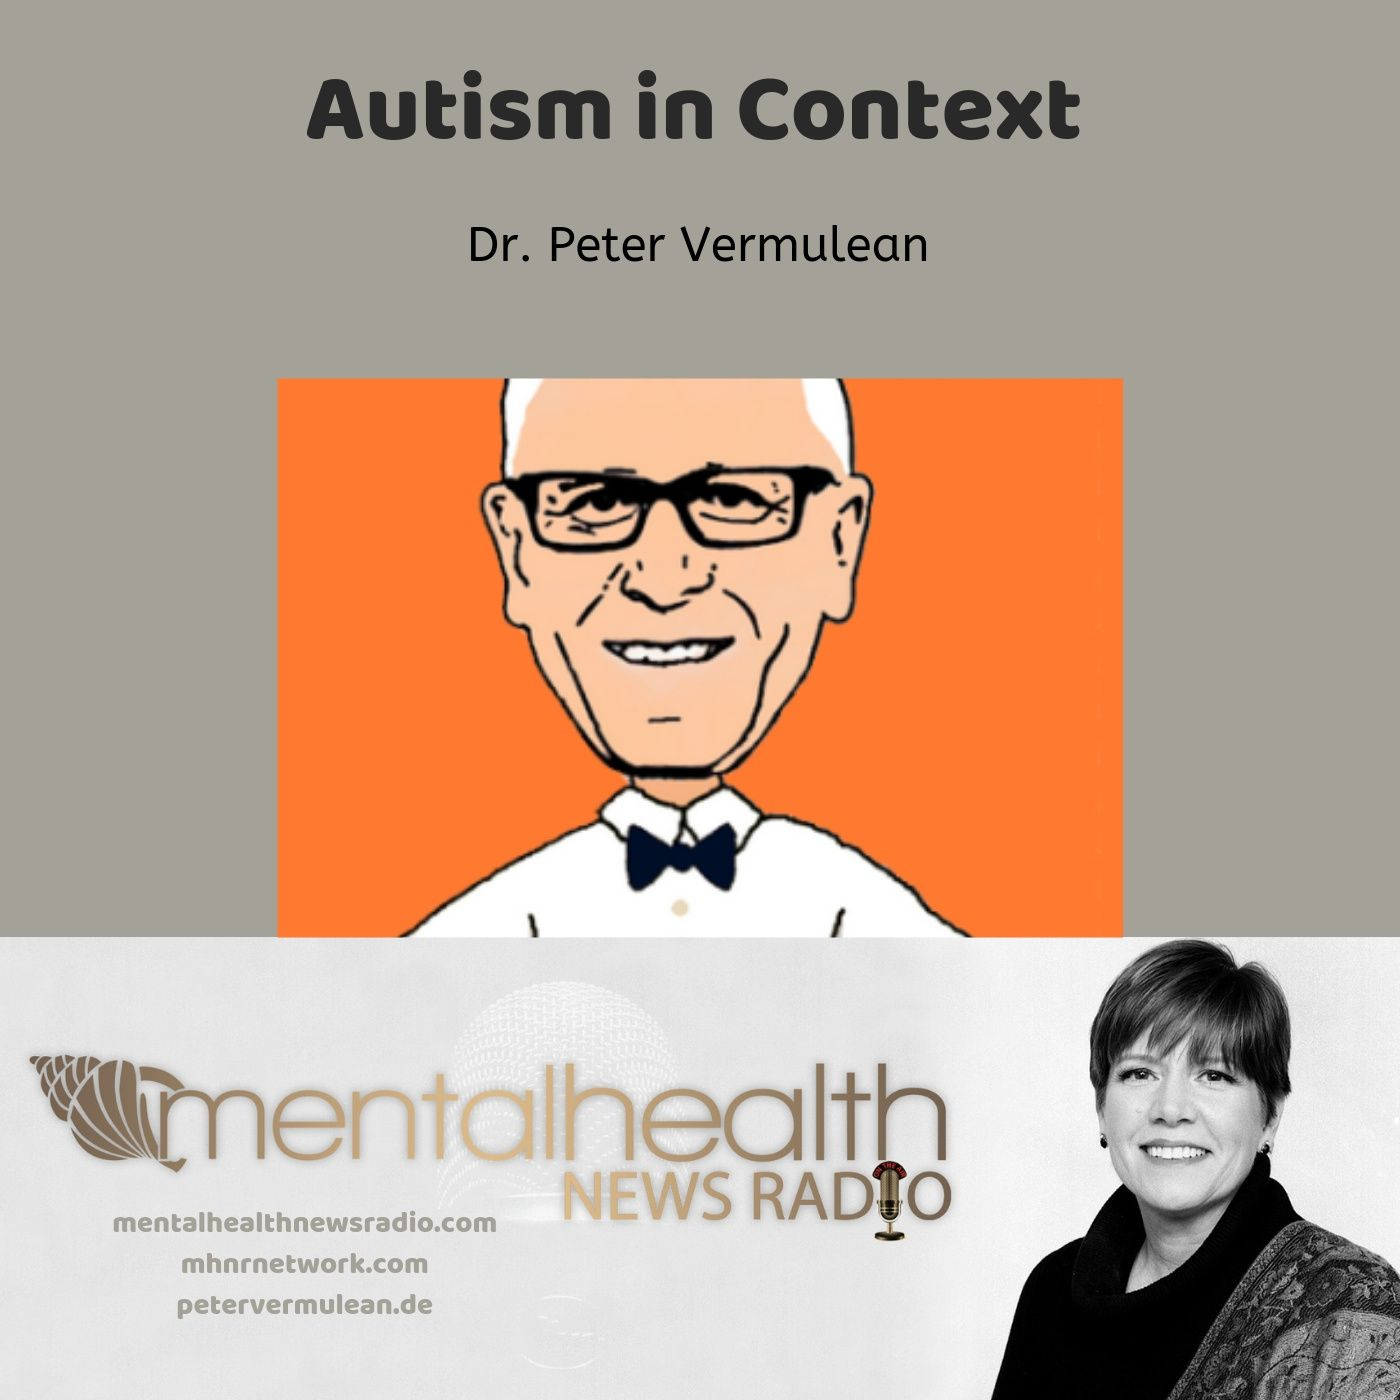 Mental Health News Radio - Autism in Context with Dr. Peter Vermeulen